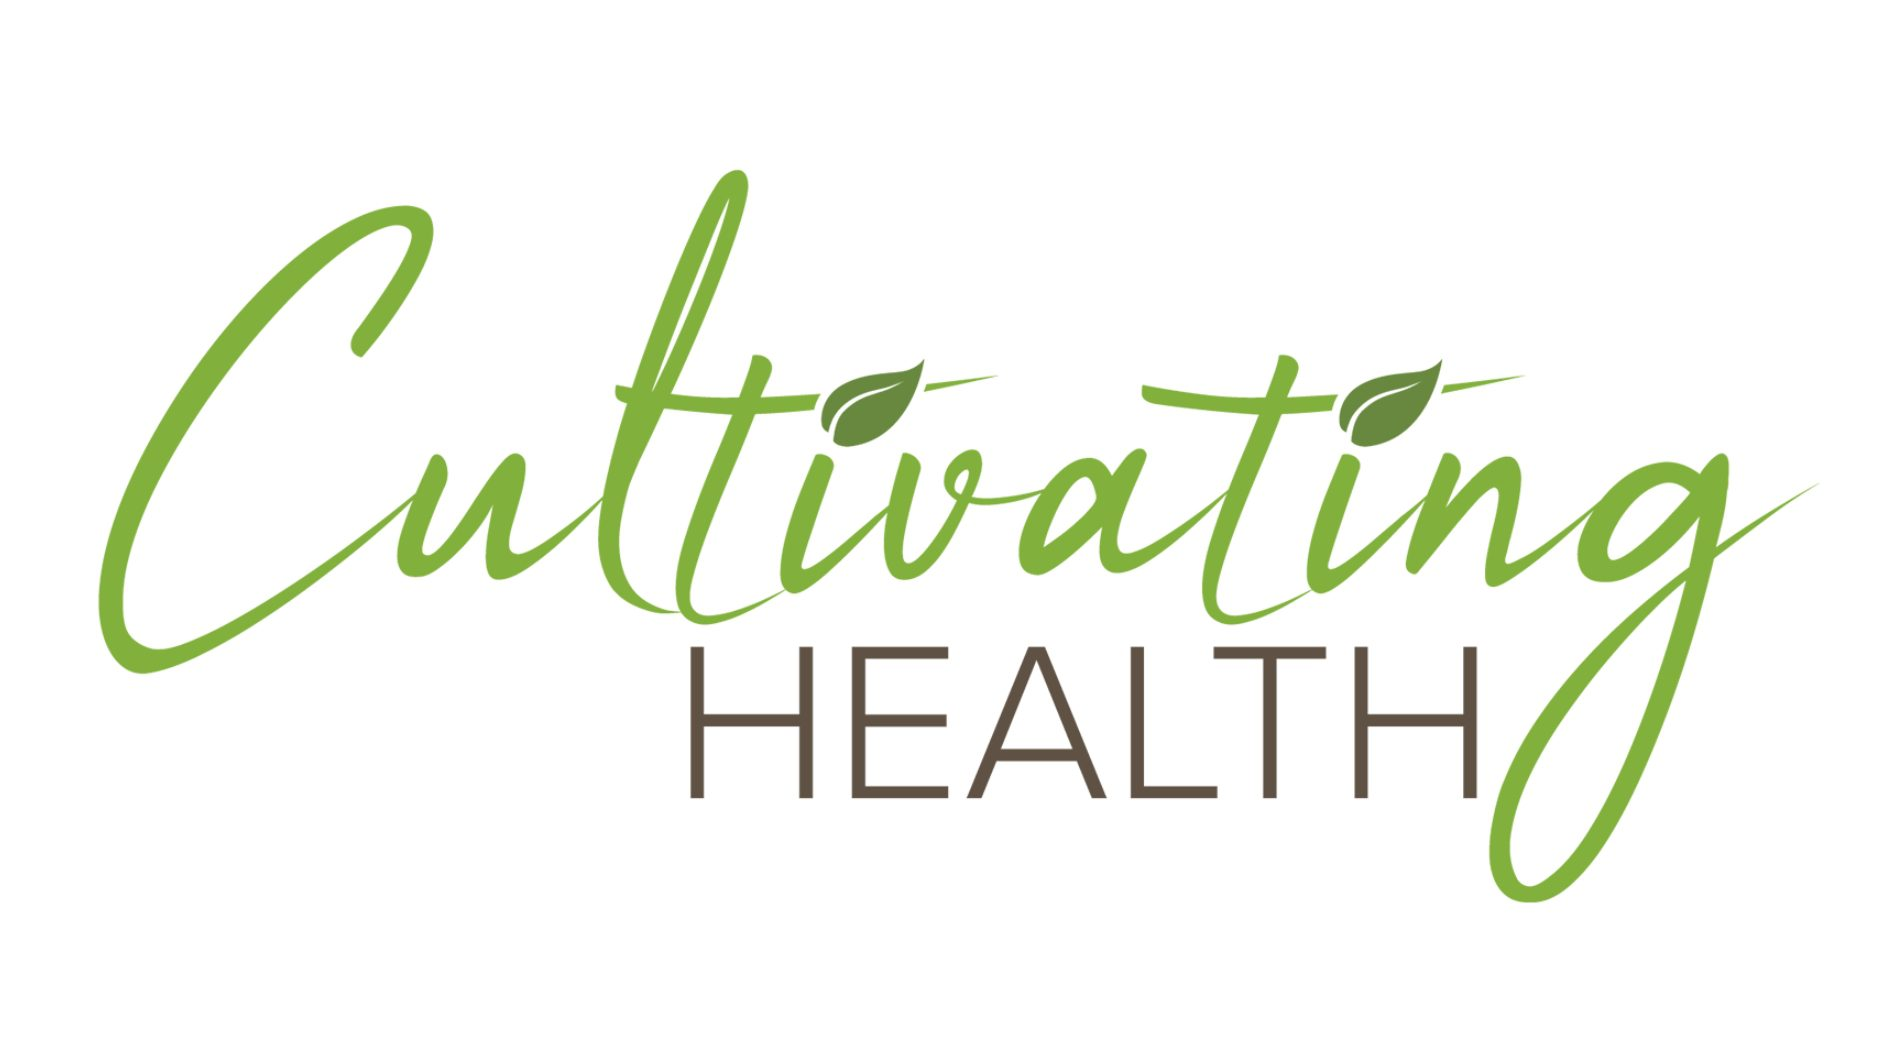 Cultivating Health - Logo